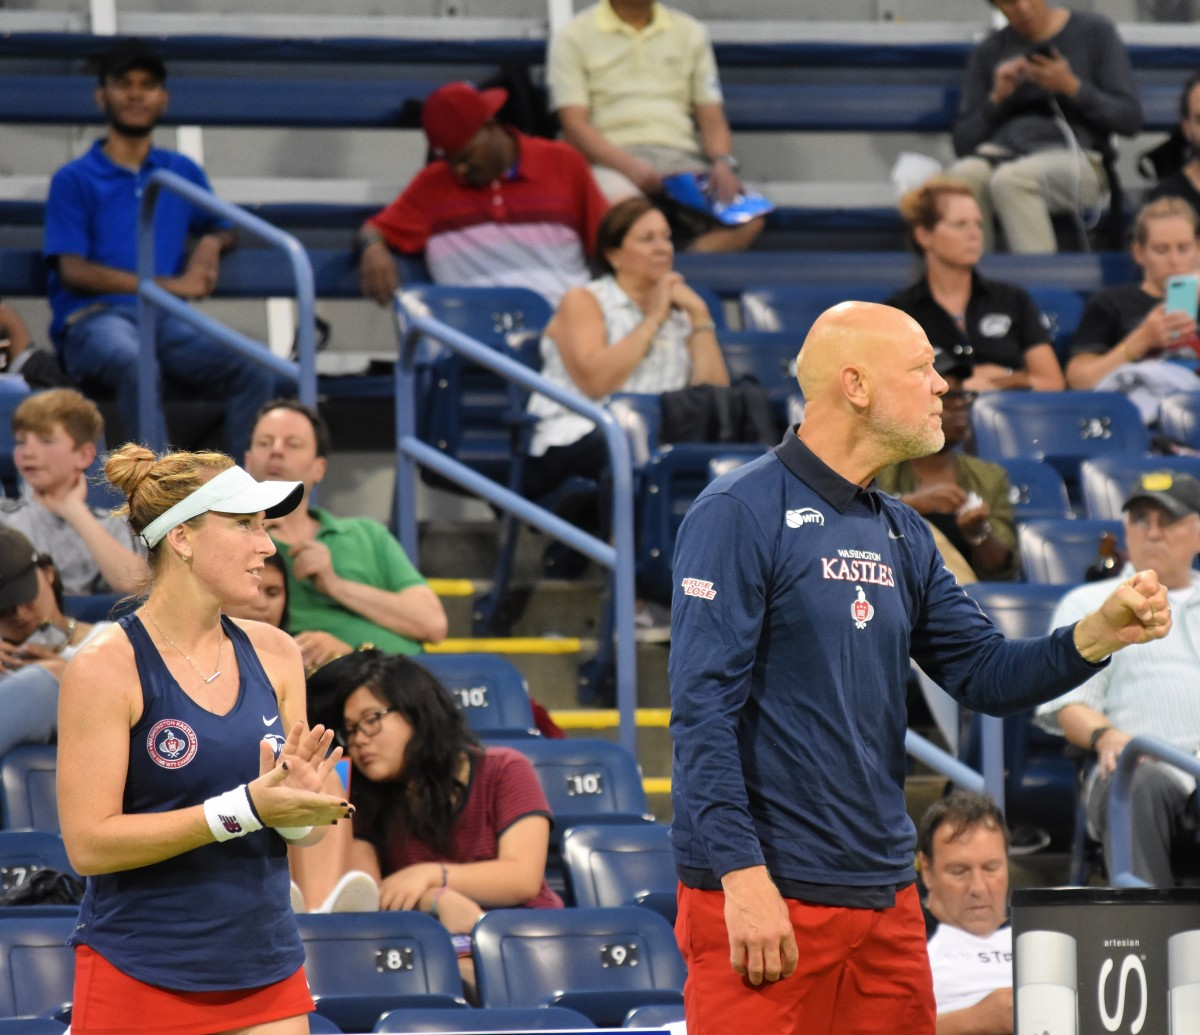 World TeamTennis: Washington Kastles defeat New York Empire